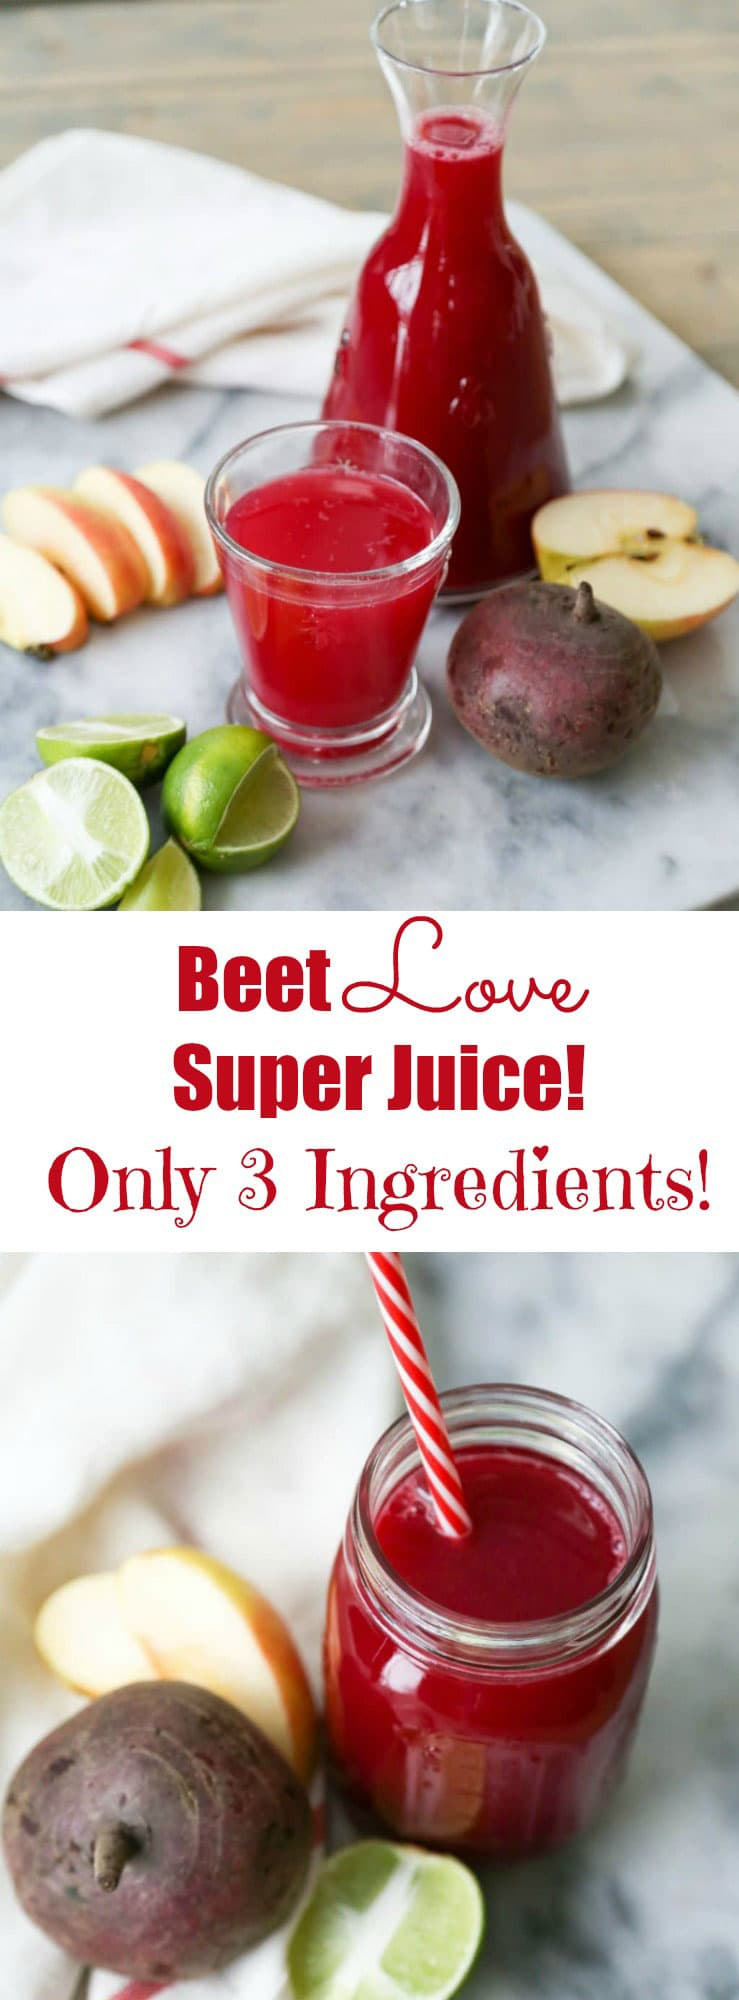 Beet Super Juice! Made with 3 simple whole food ingredients. It's fresh, tangy, sweet, and so delicious! Make if for breakfast or for any time you need a refreshing pick me up.